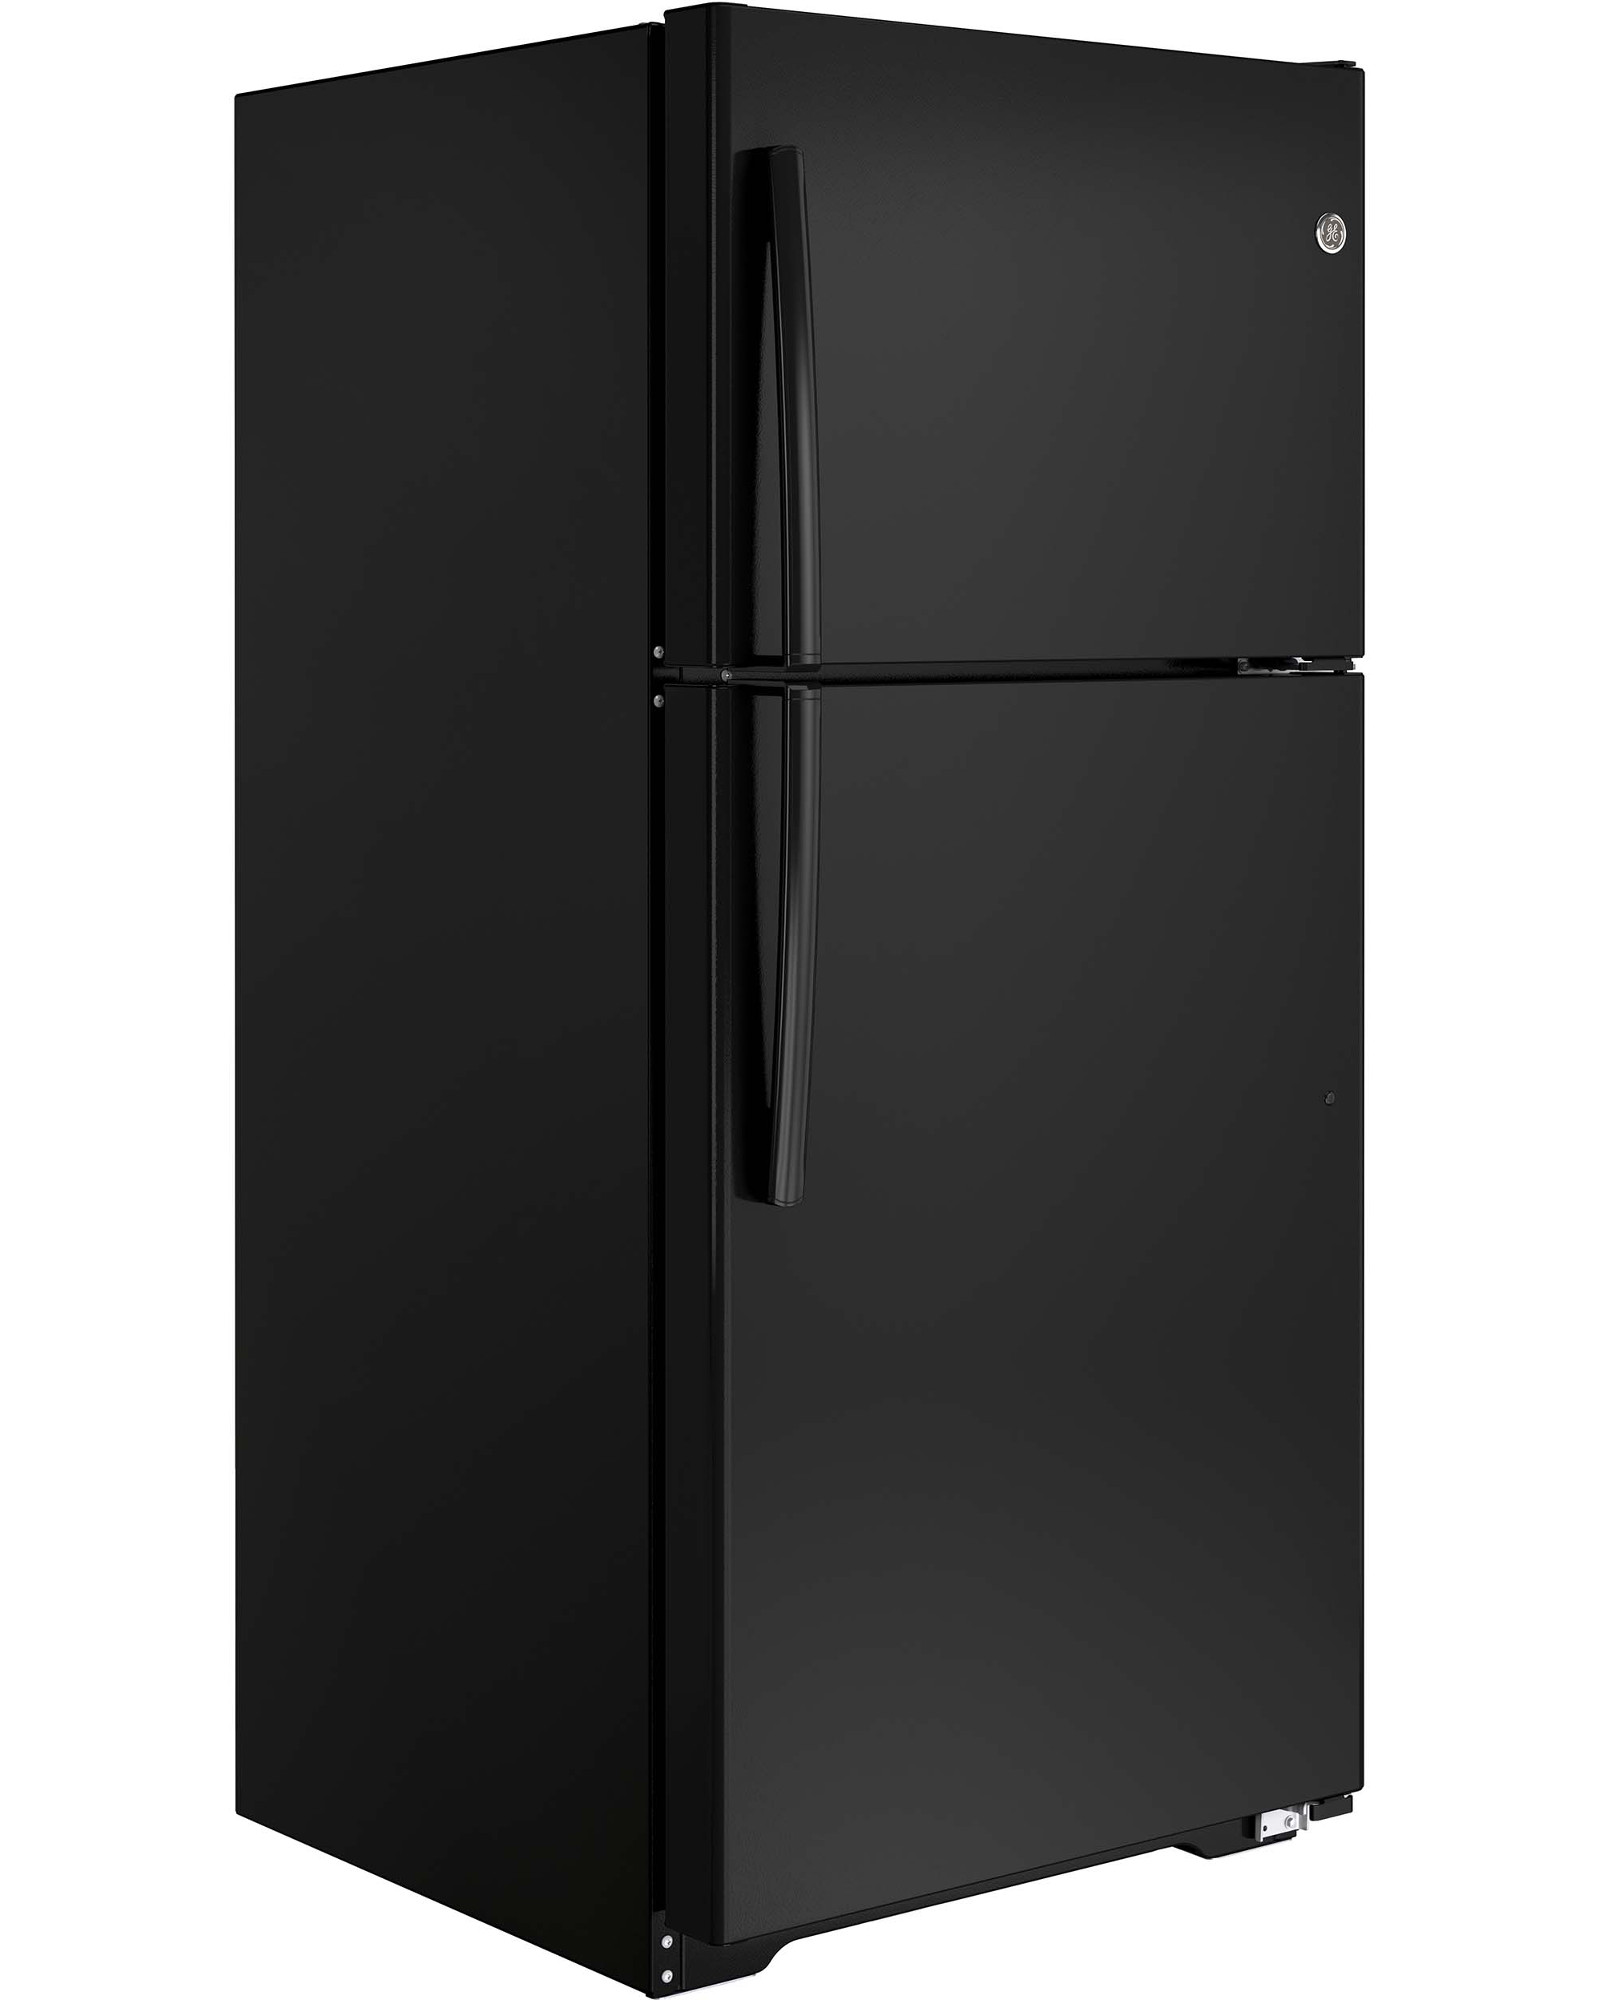 GE Appliances GTE18ETHBB 18.2 cu. ft. Top-Freezer Refrigerator - Black